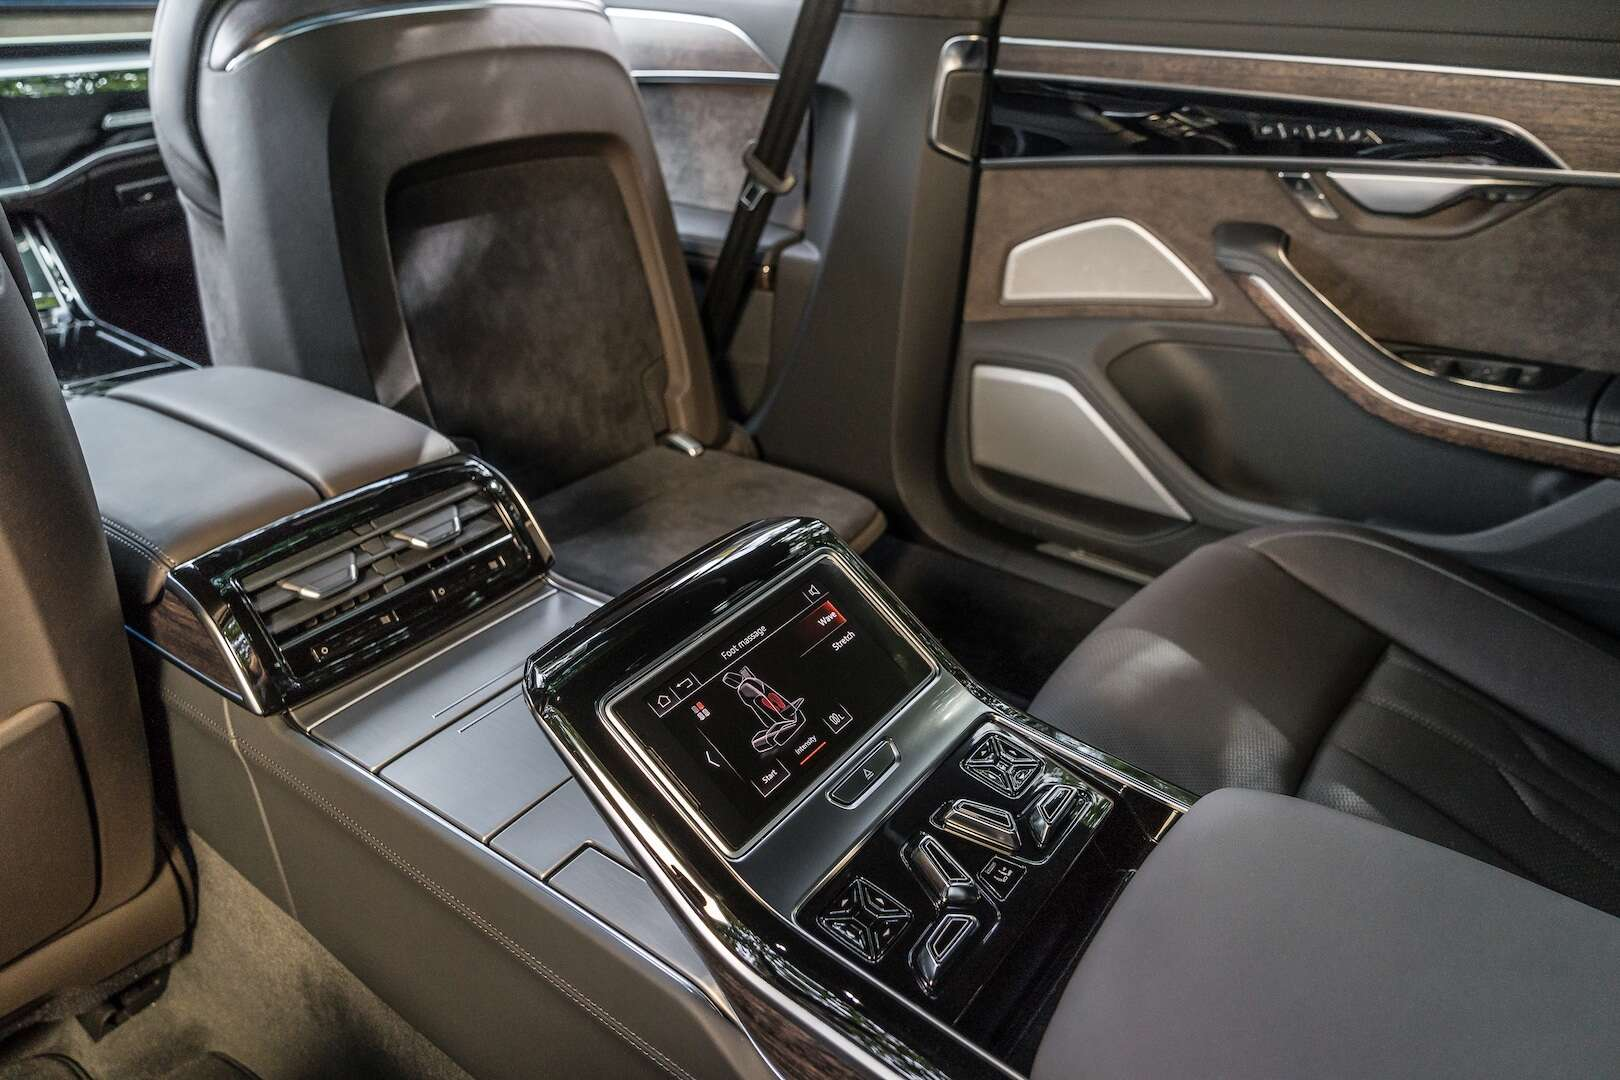 2019 audi a8 review tech packed flagship sedan delivers. Black Bedroom Furniture Sets. Home Design Ideas